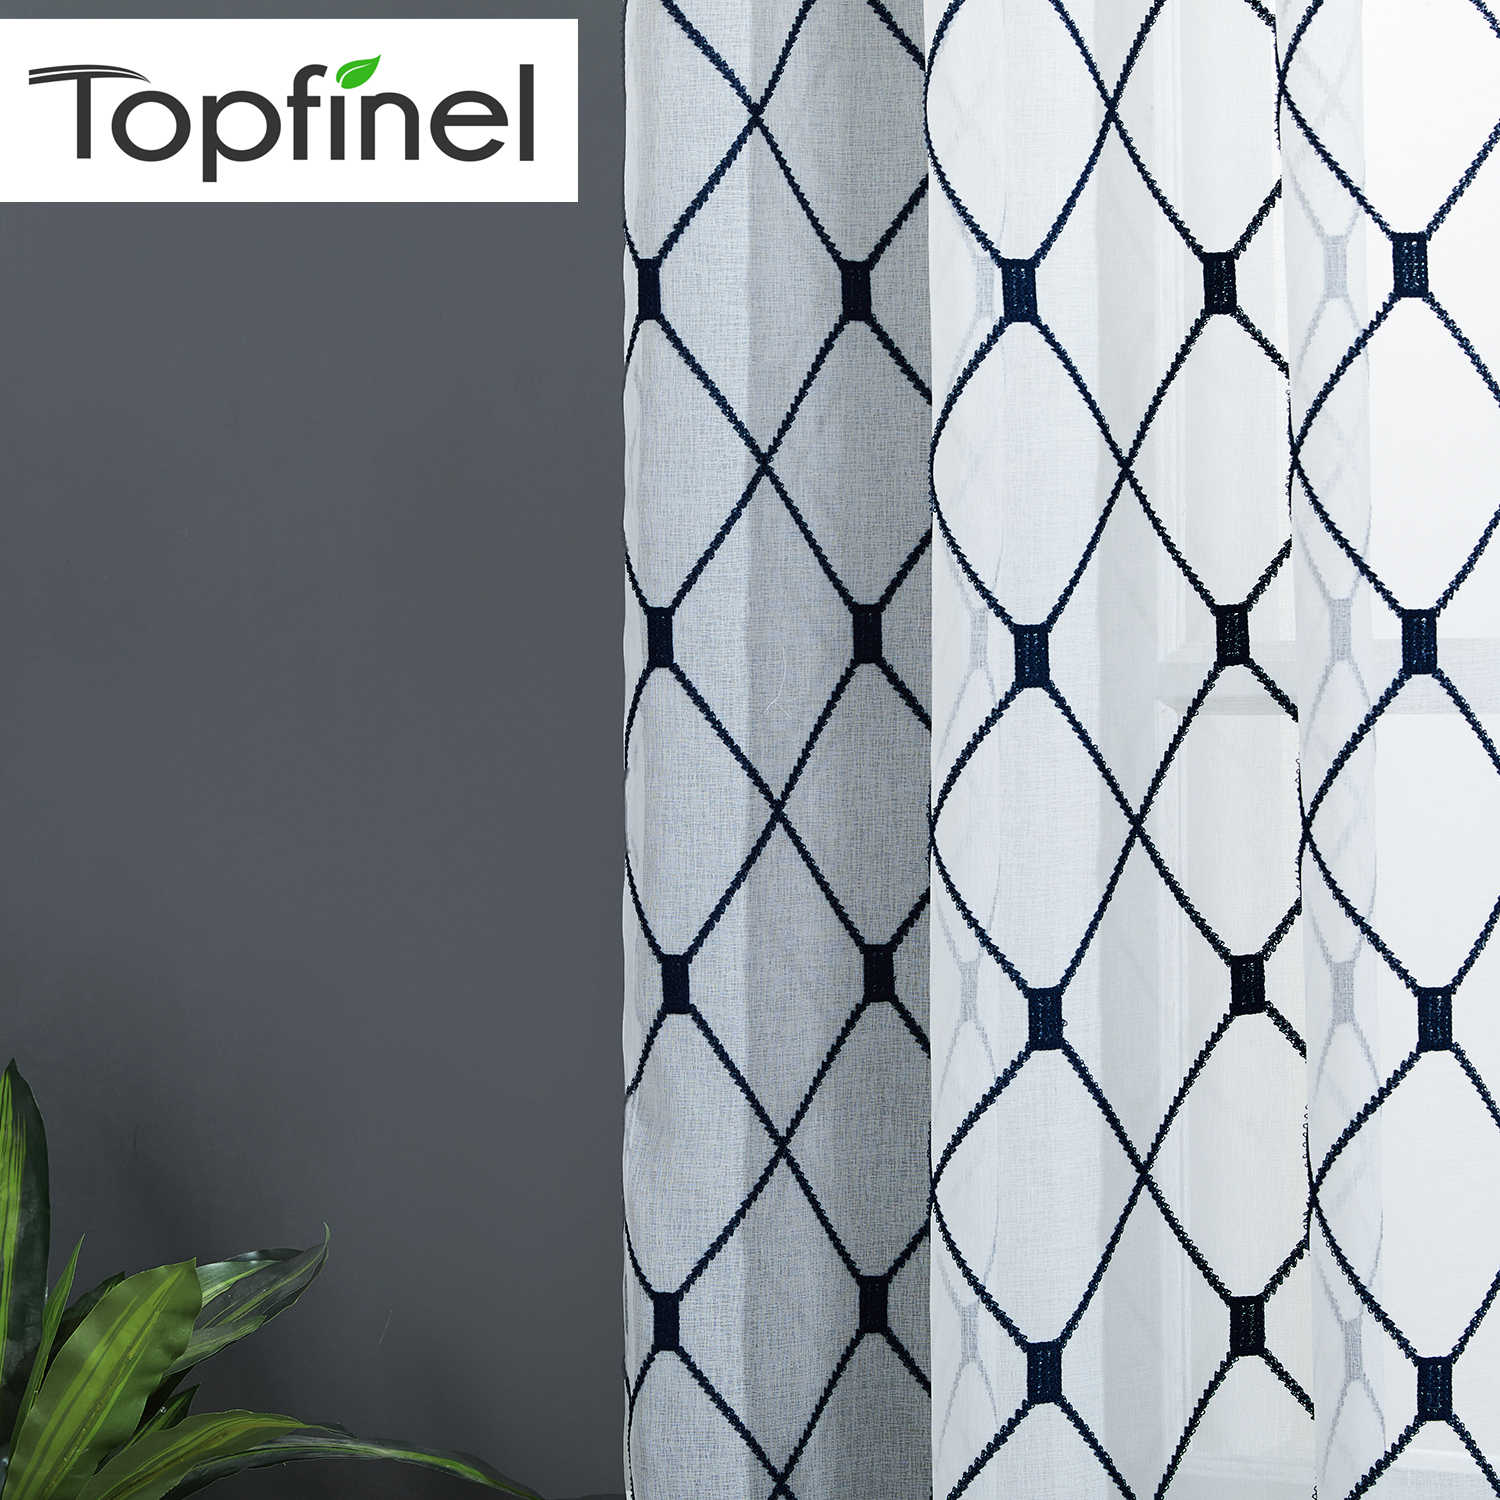 Topfinel Geometric Embroidered Sheer Curtains Tulle Window Curtains for Kitchen Living Room Bedroom White Voile for Cafe